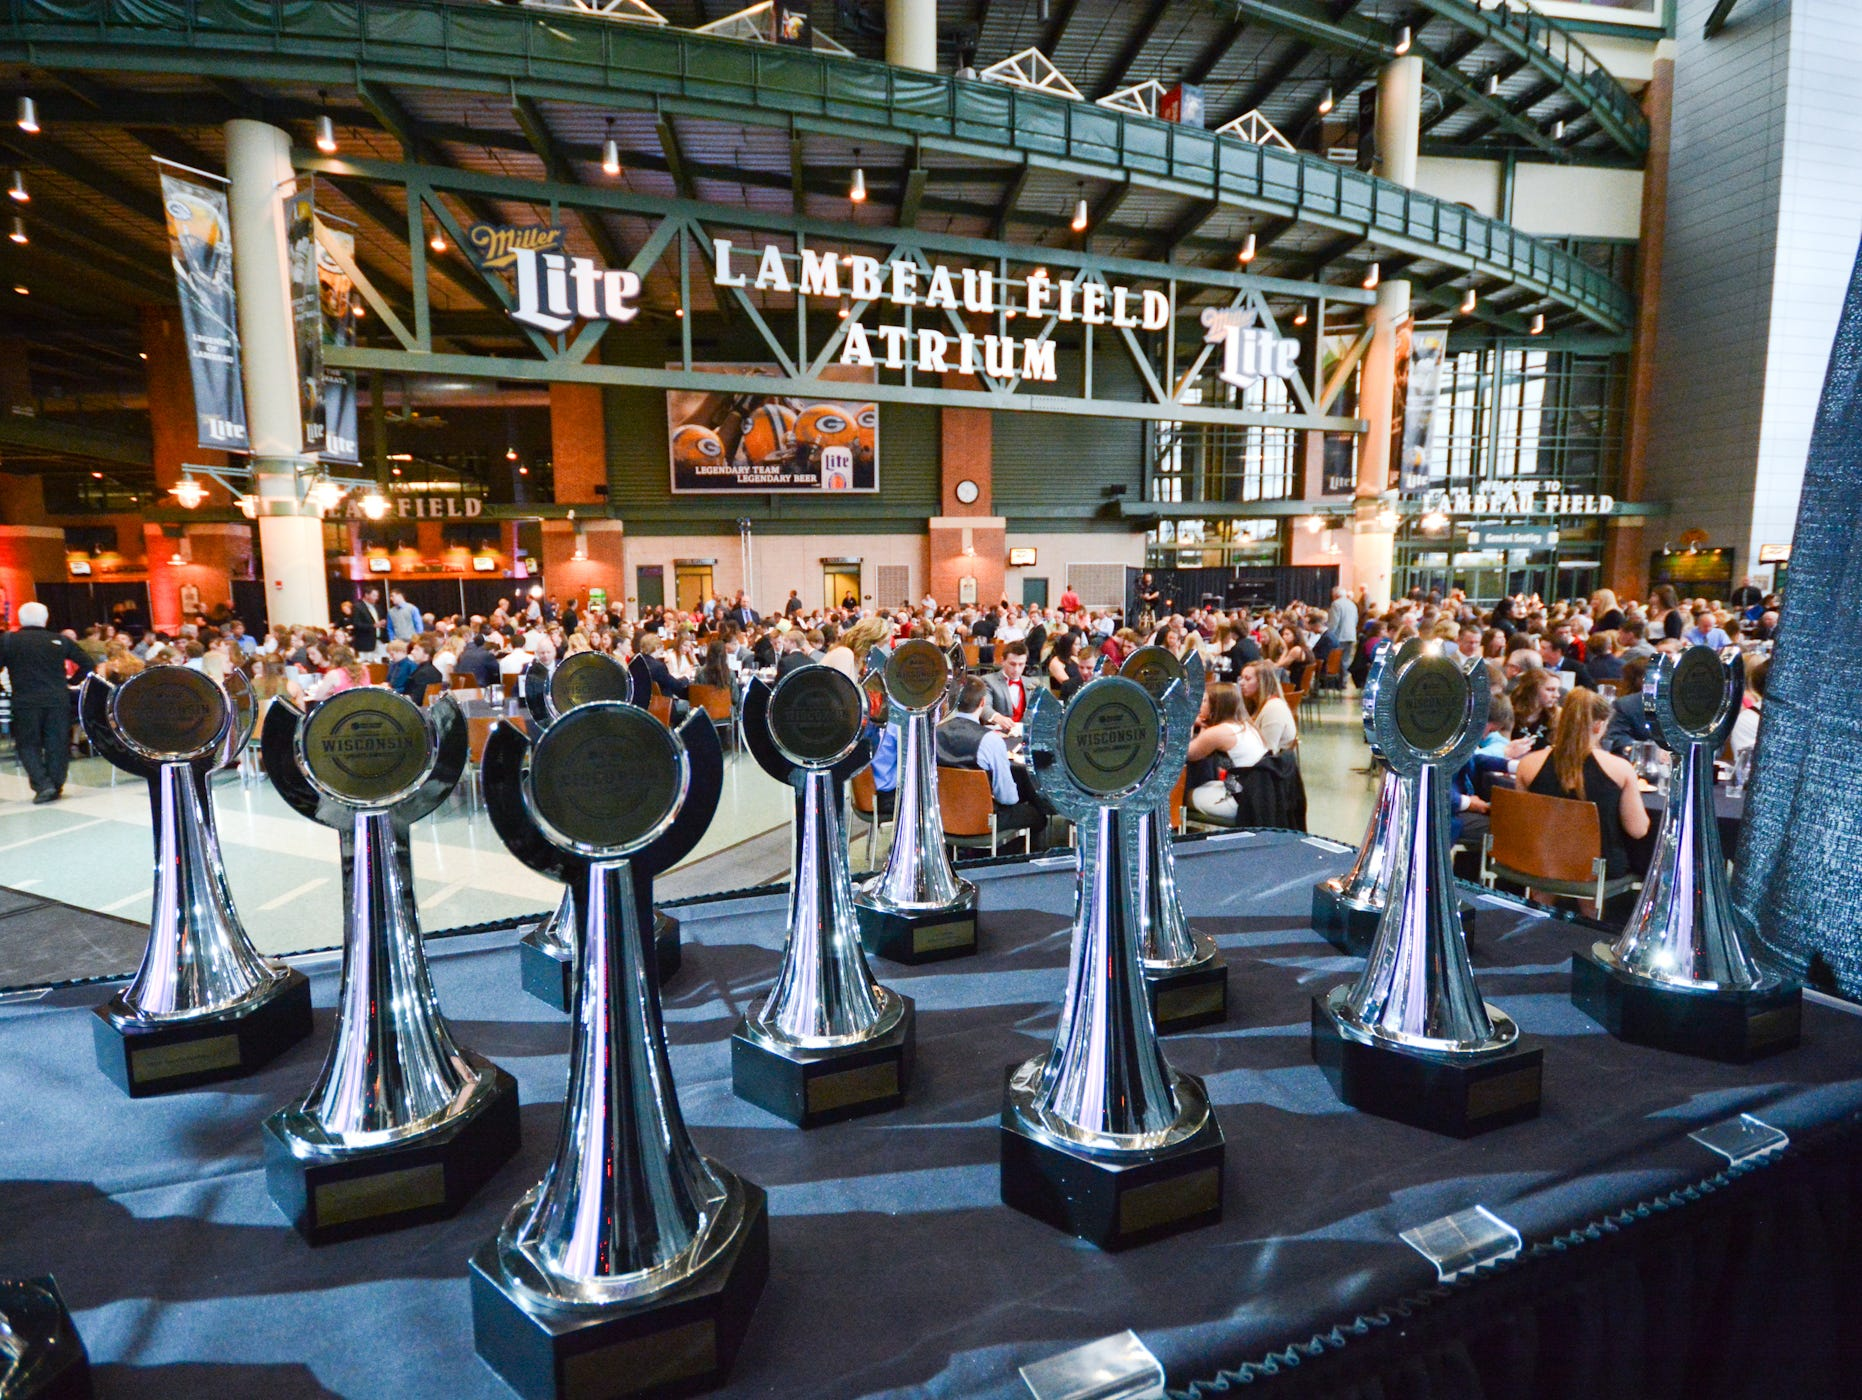 Standout athletes, coaches and teams from high schools in the Appleton, Fond du Lac, Green Bay, Manitowoc, Marshfield, Oshkosh, Sheboygan, Stevens Point, Wausau and Wisconsin Rapids markets will be saluted for their achievements during the upcoming Wisconsin High School Sports Awards show. The event will be held May 12 at the Lambeau Field Atrium in Green Bay.